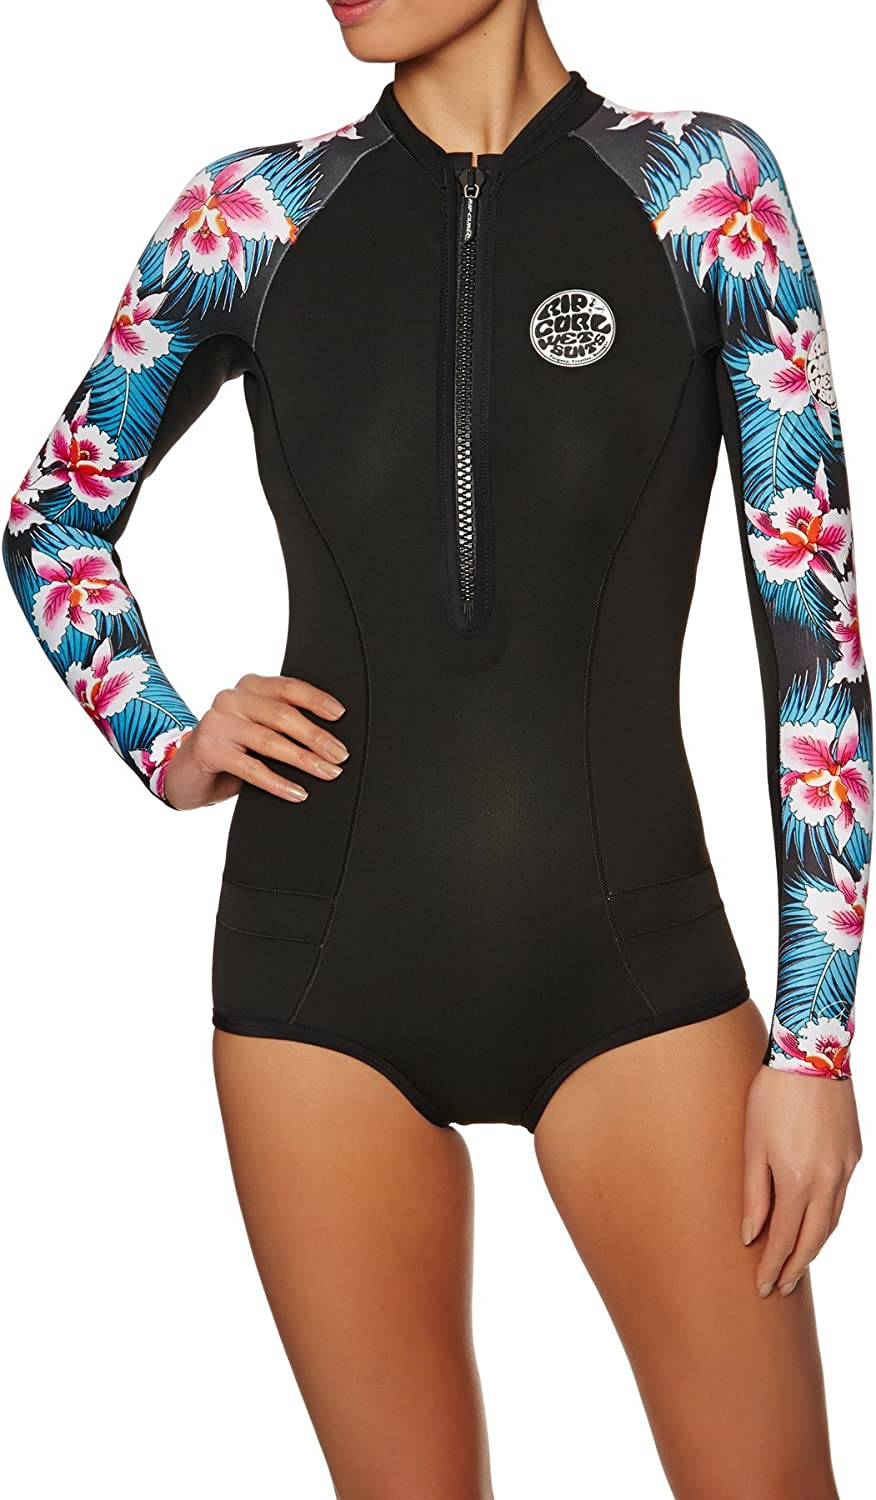 RIP CURL Womens G-Bomb 1MM Ls Front Zip Hi Cut Shorty Wetsuit Wetsuit Black SubEasy Stretch Long Sleeve